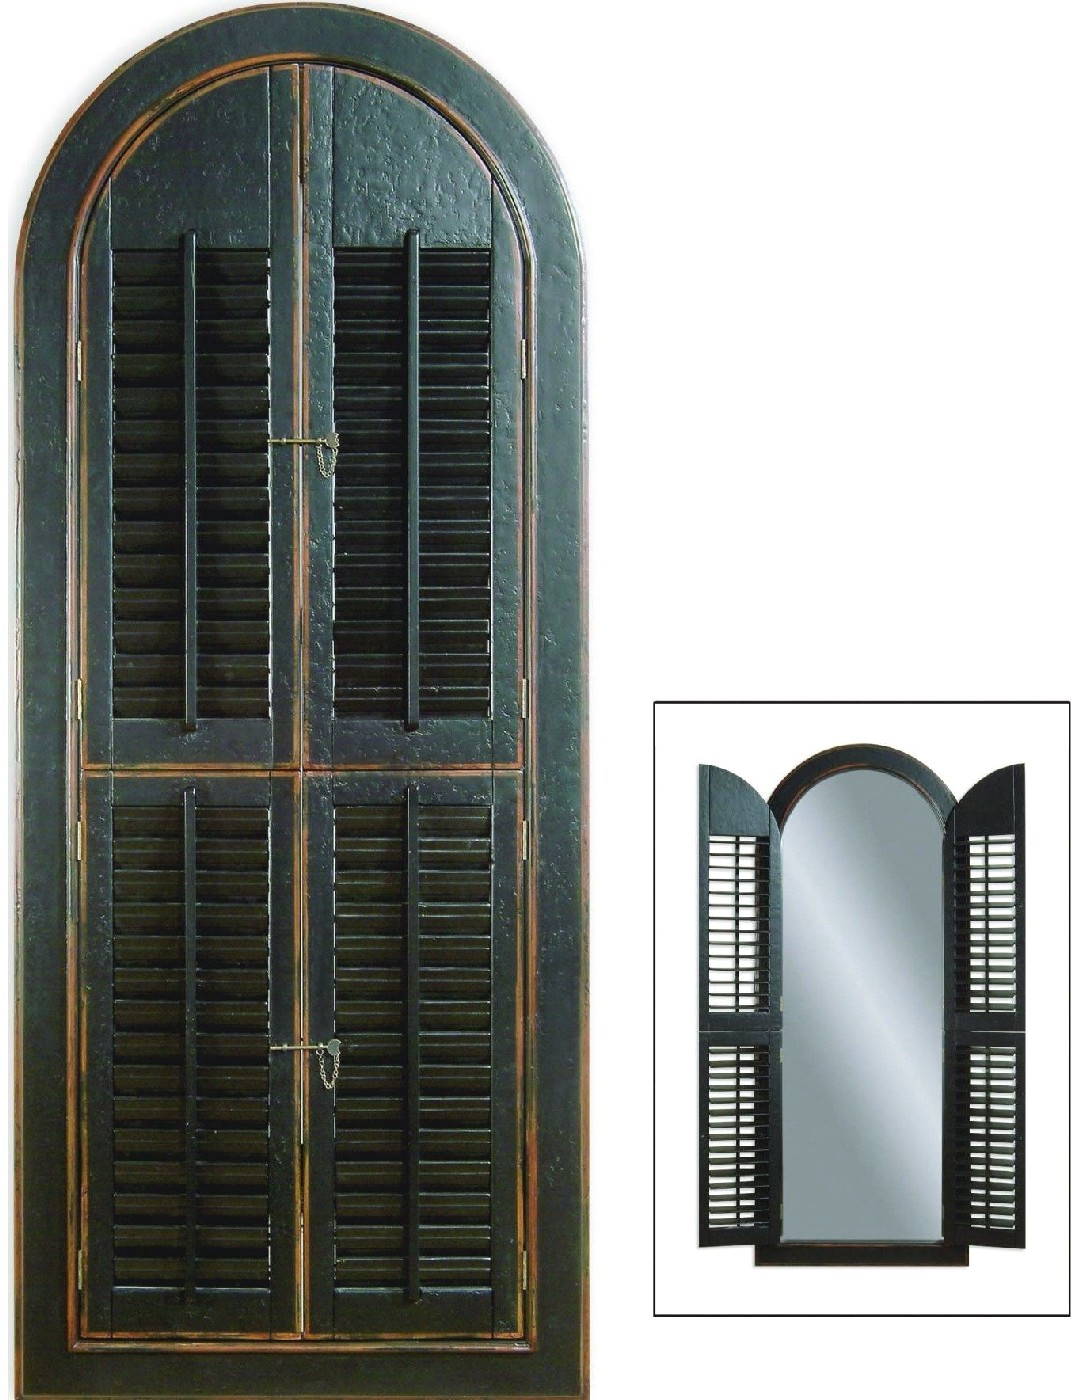 Arched Rustic Window Design Shutter Mirror M1925EC